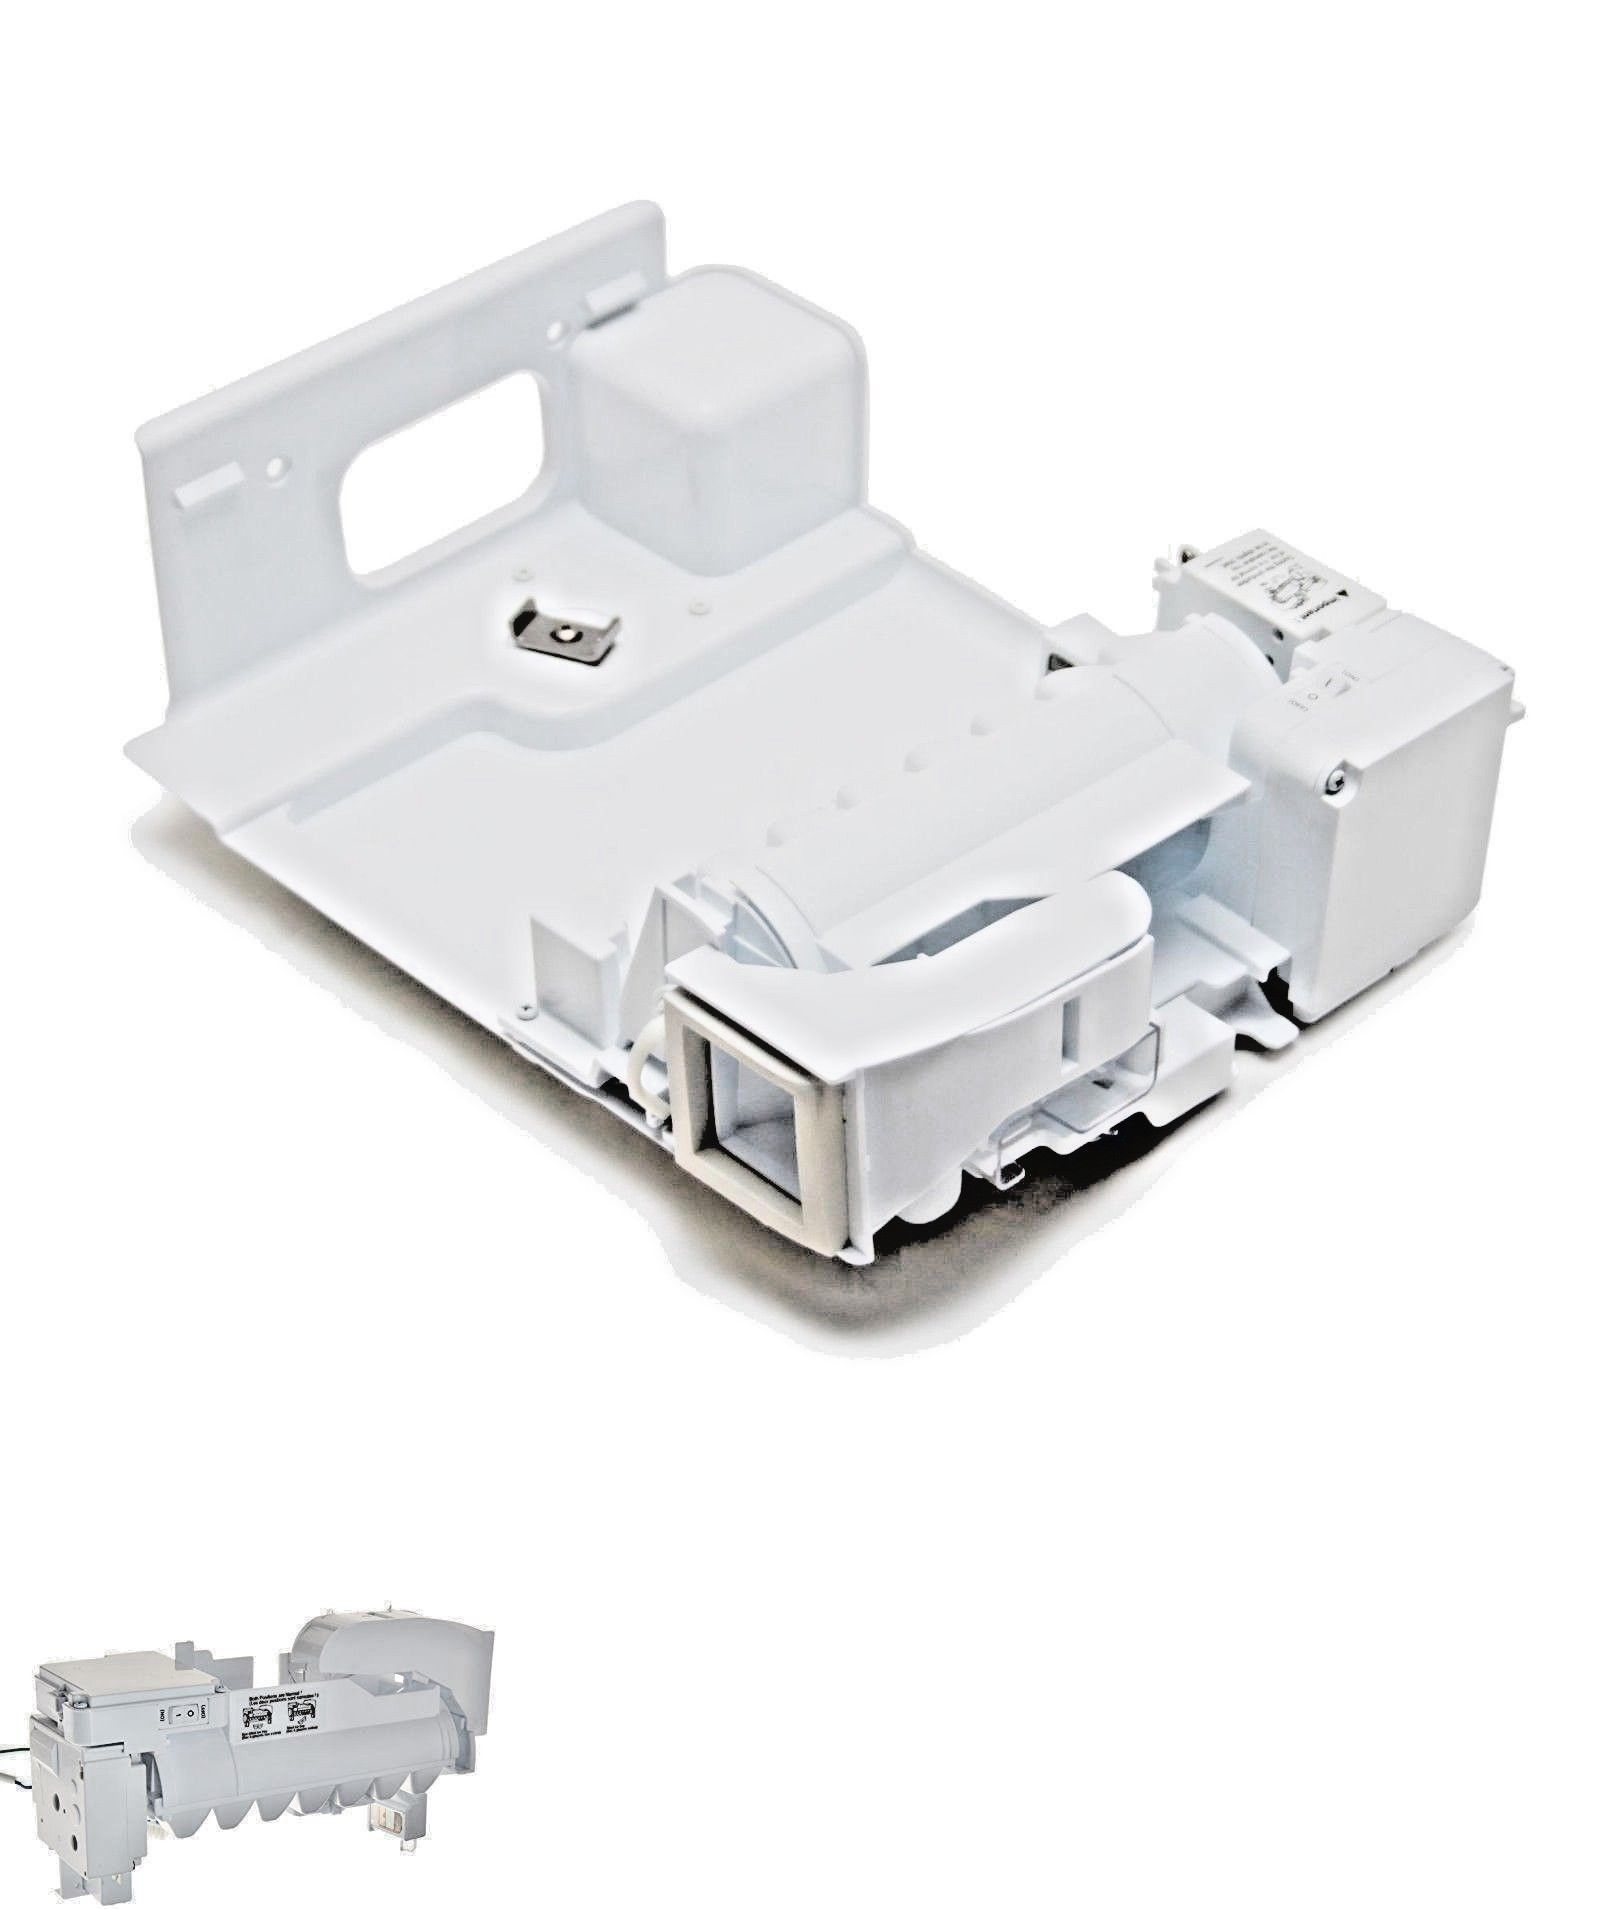 medium resolution of parts and accessories 184666 lg aeq73110210 refrigerator ice maker assembly kit with free bonus buy it now only 129 29 on ebay parts accessories